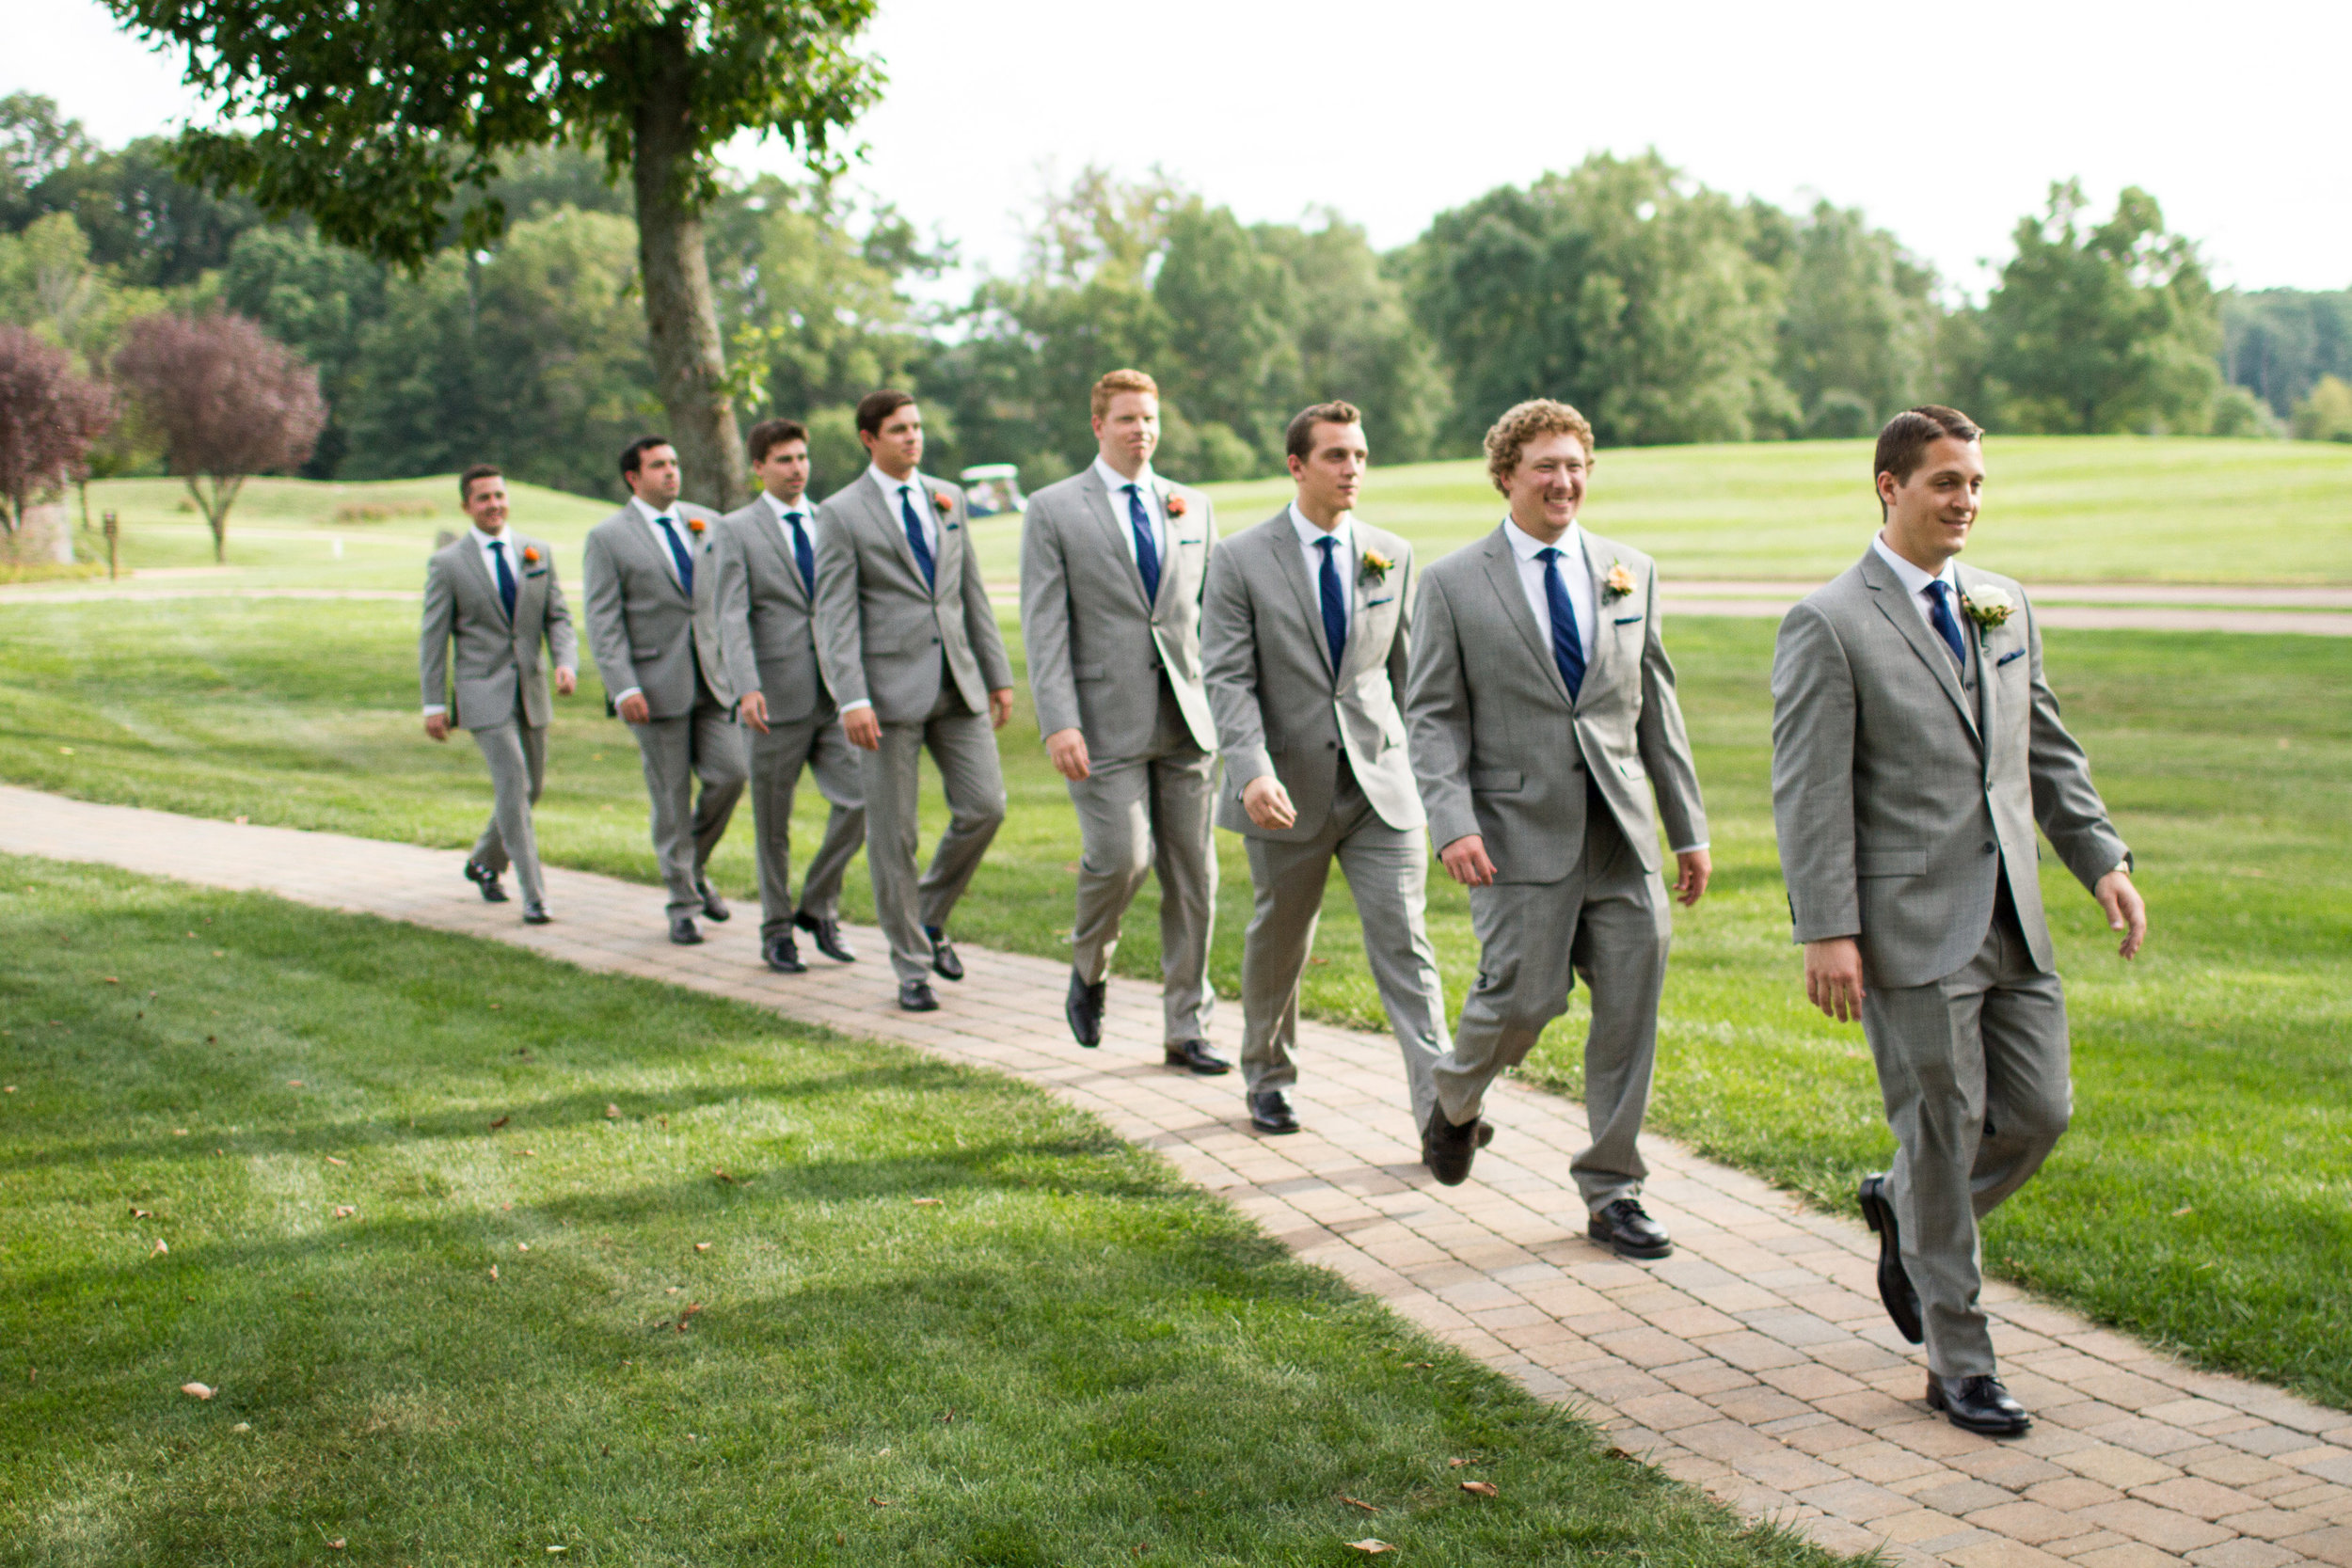 Grey suit and navy ties groomsmen